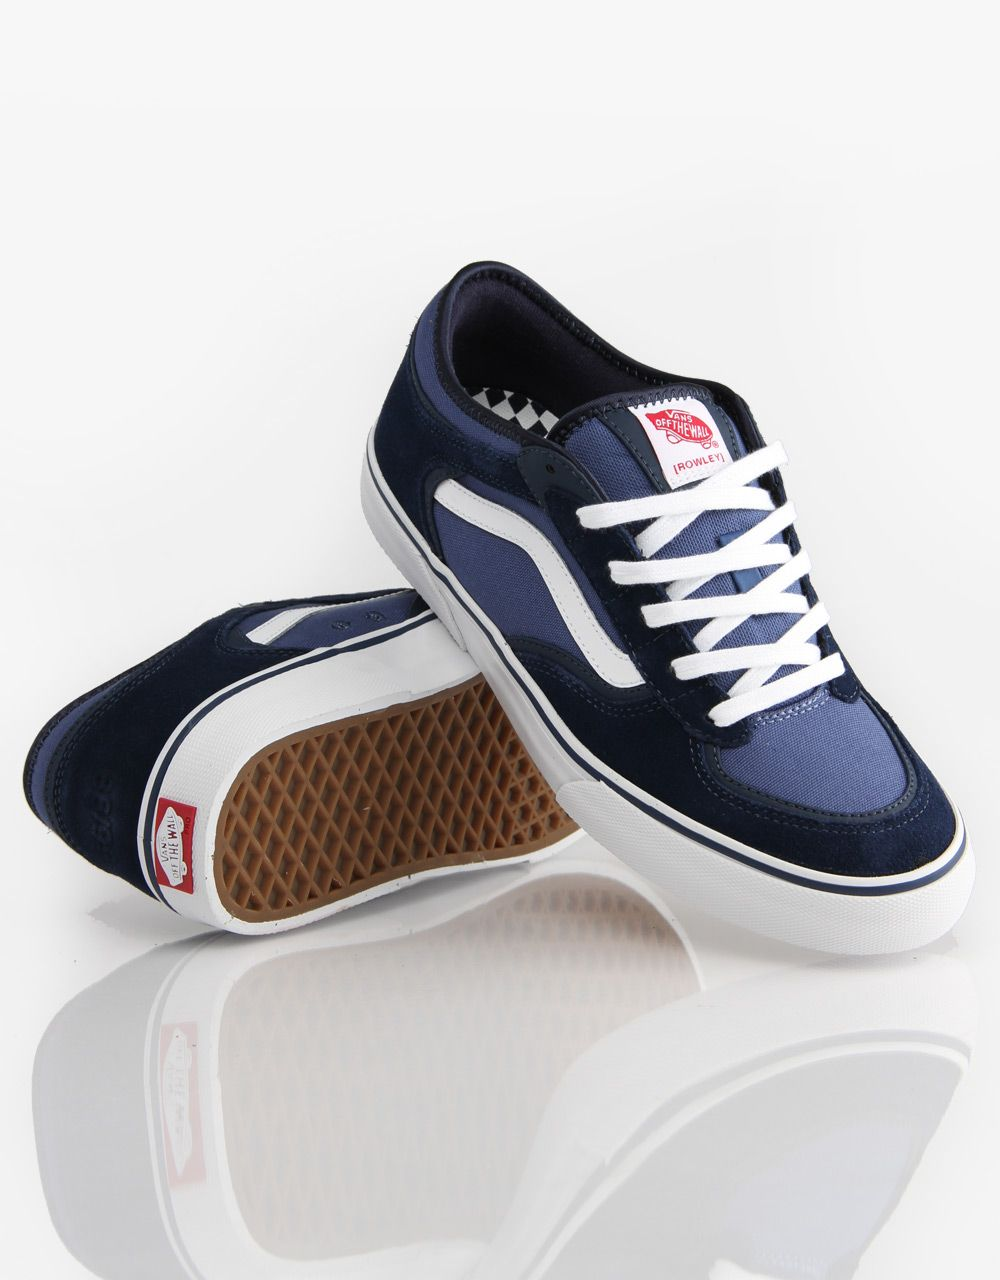 7176f85cad67 Vans Rowley Pro Skate Shoes - Navy White - RouteOne.co.uk